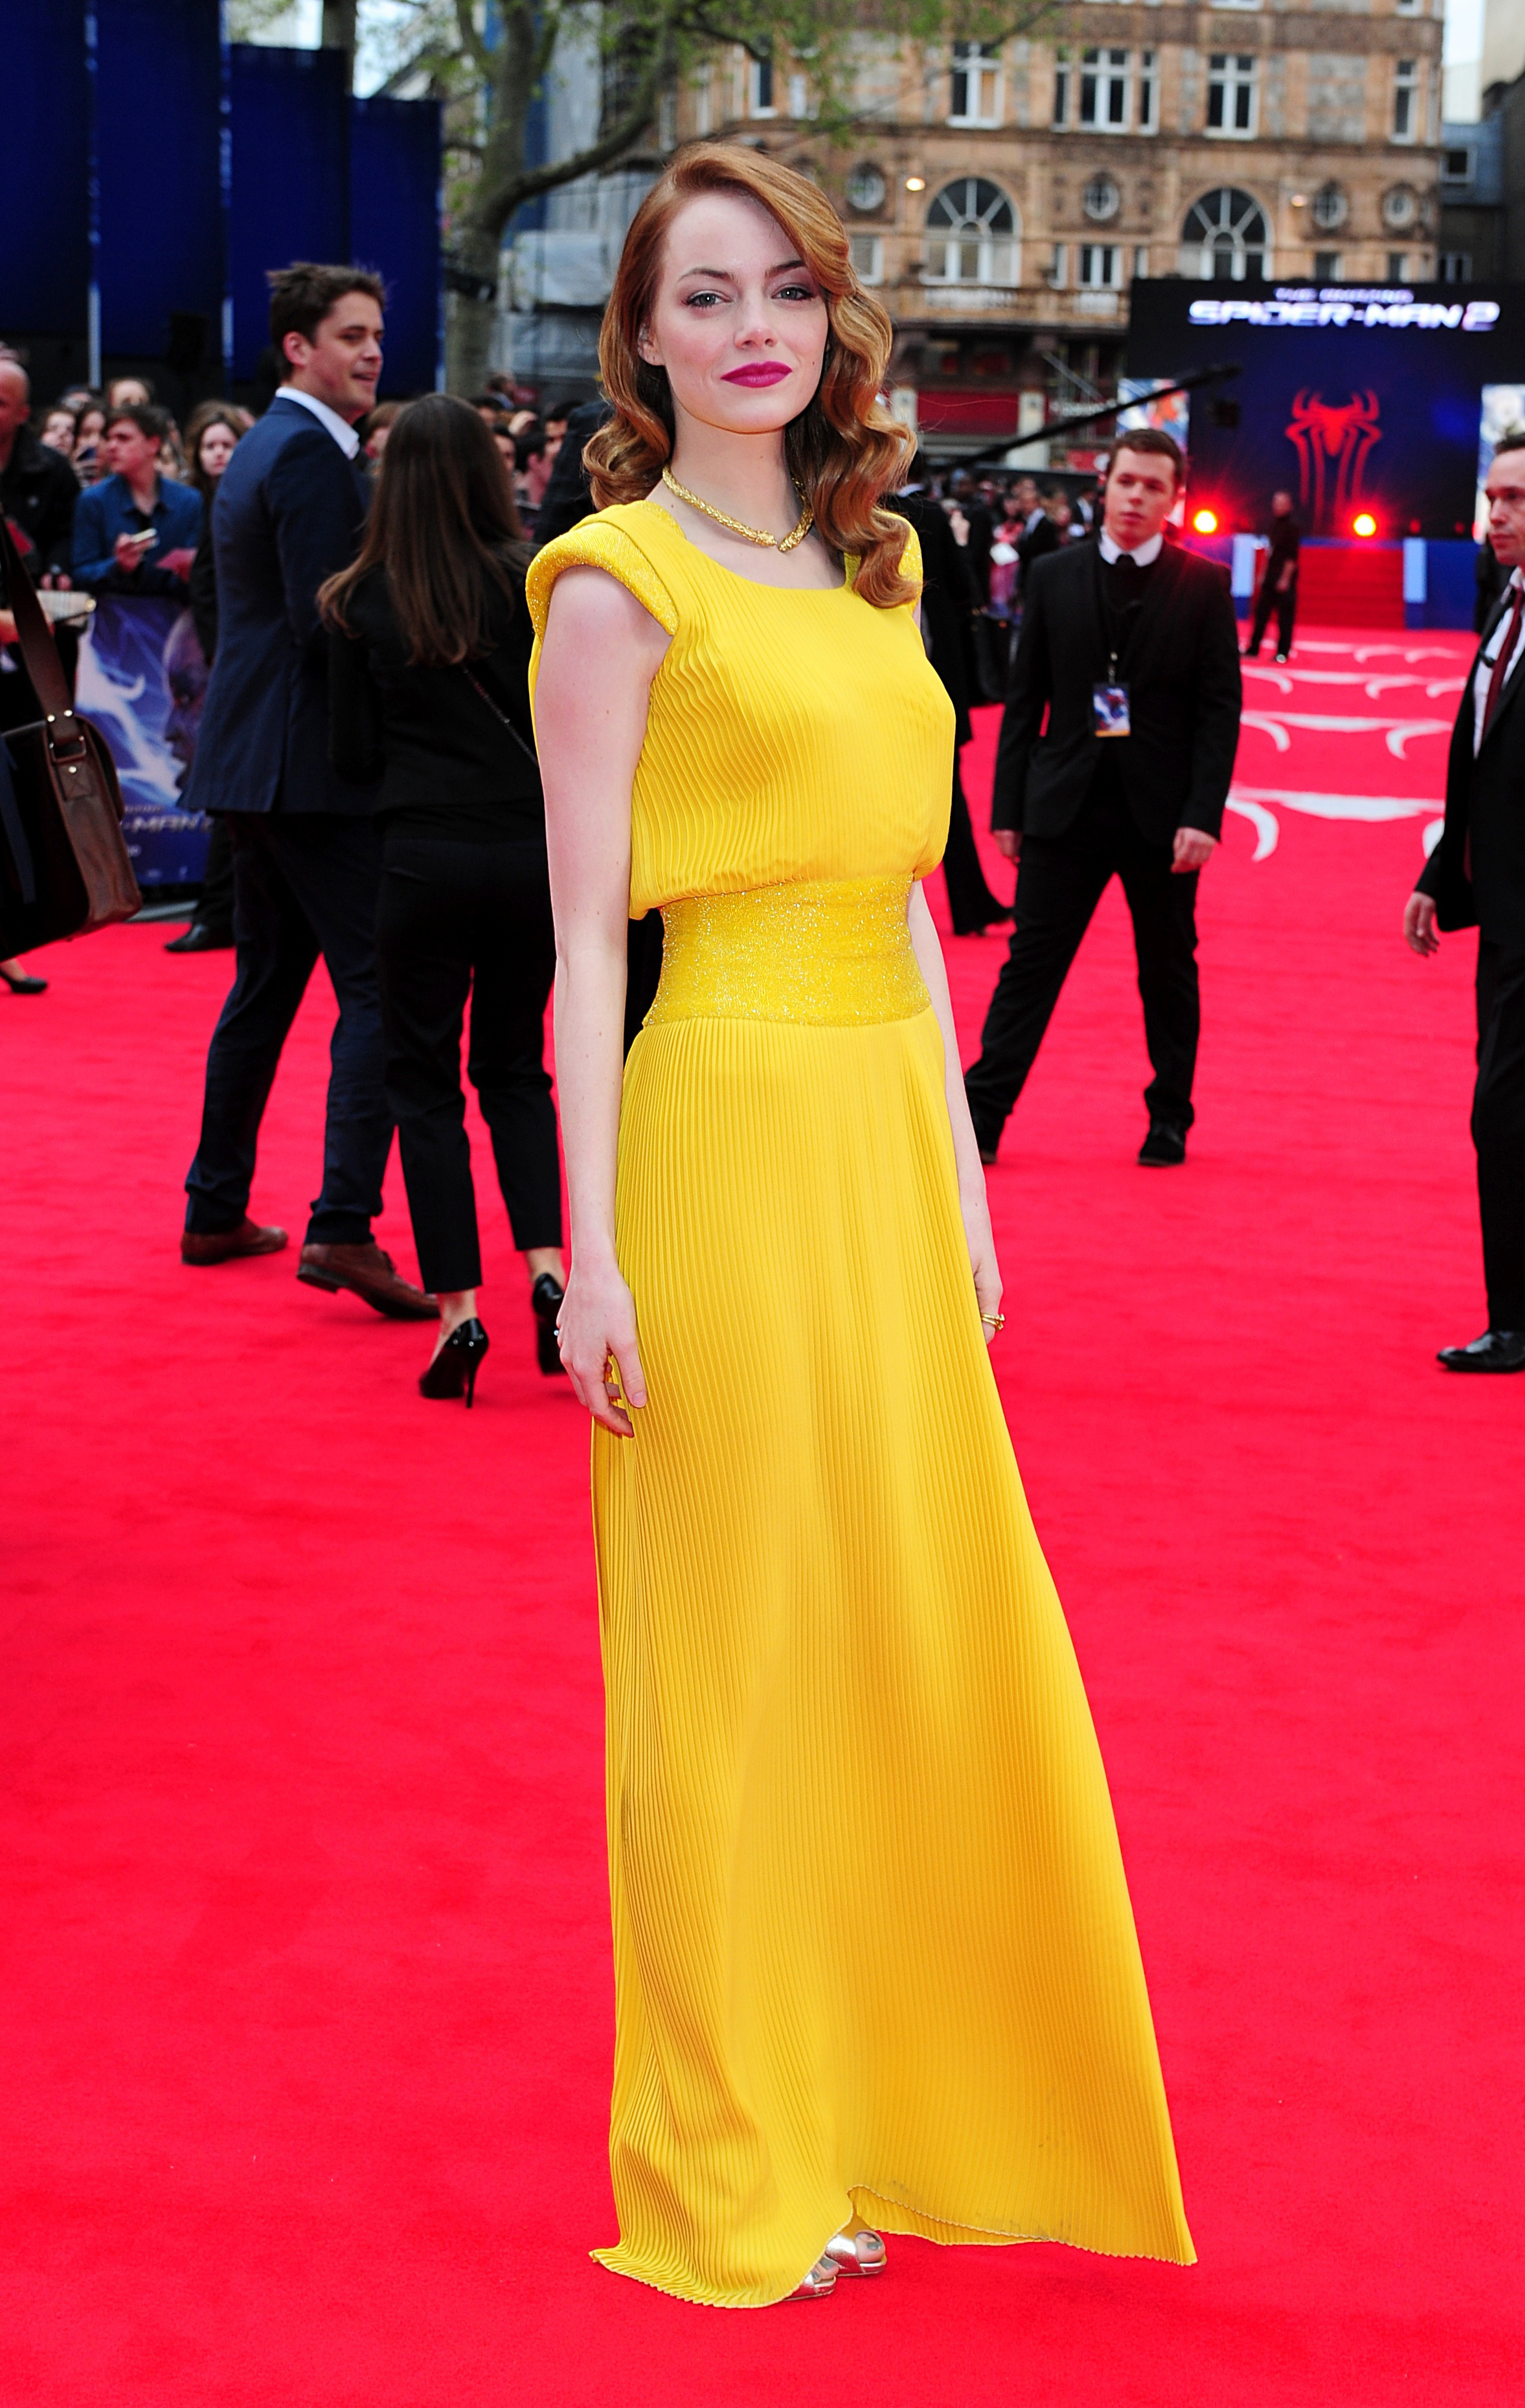 (Ian West/PA) Emma Stone arriving for the world premiere of the film The Amazing Spiderman 2, held at the Odeon Leicester Square, central London.